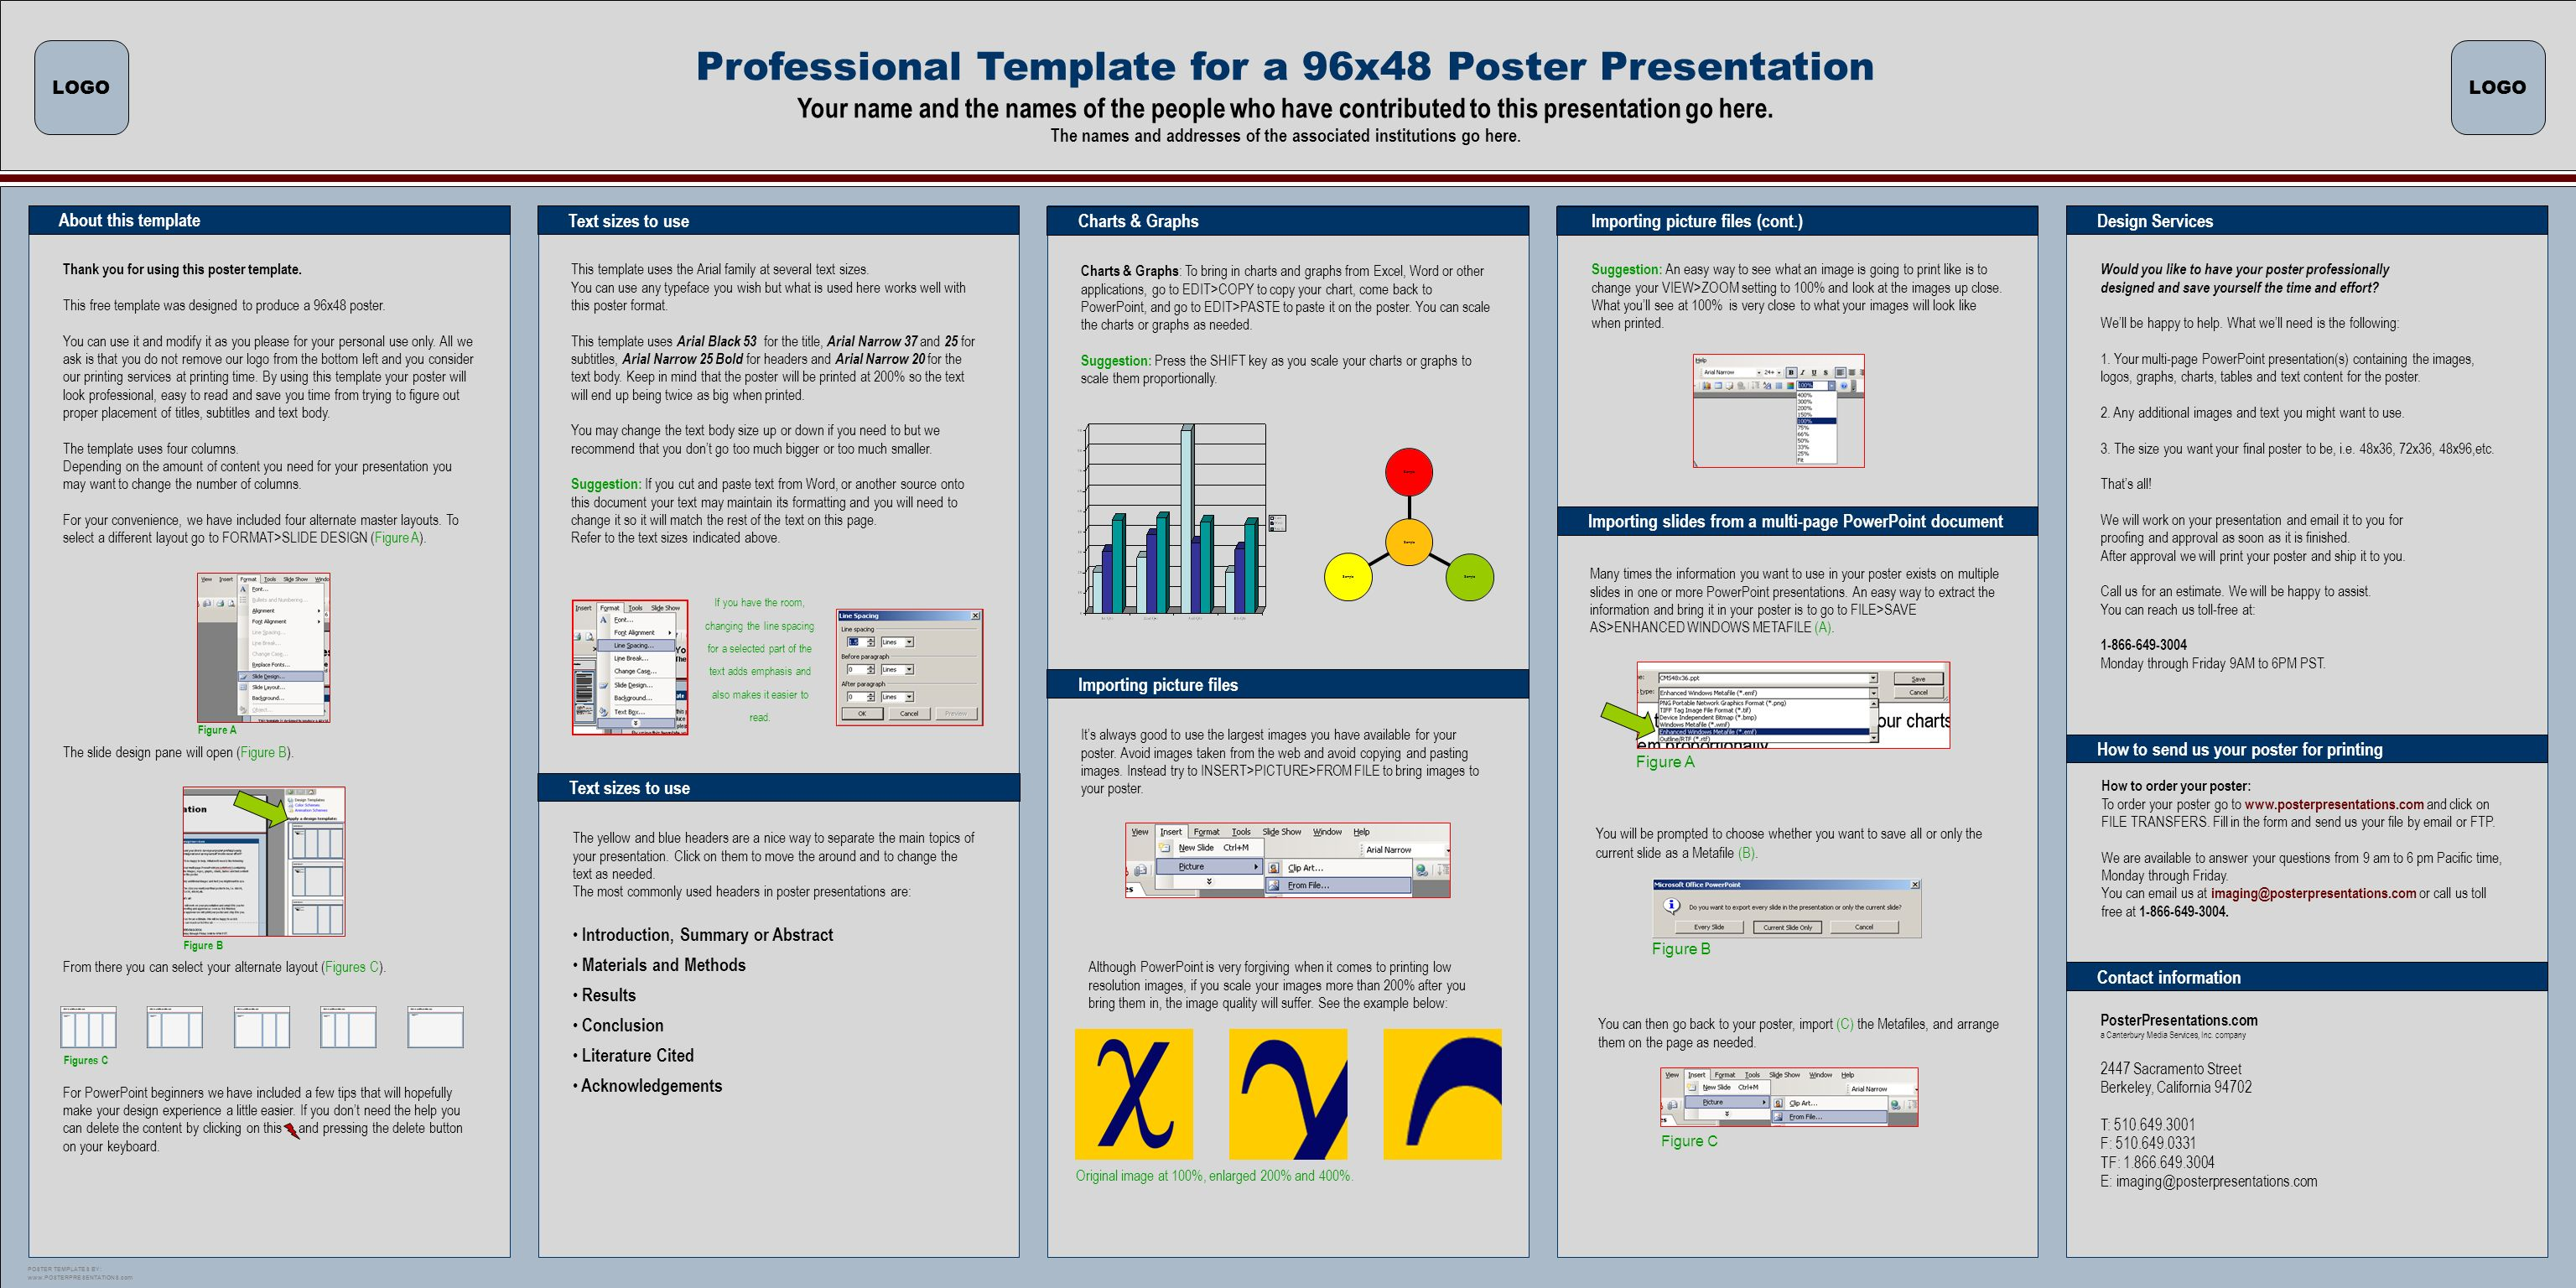 LOGO Professional Template For A 96x48 Poster Presentation Your Name